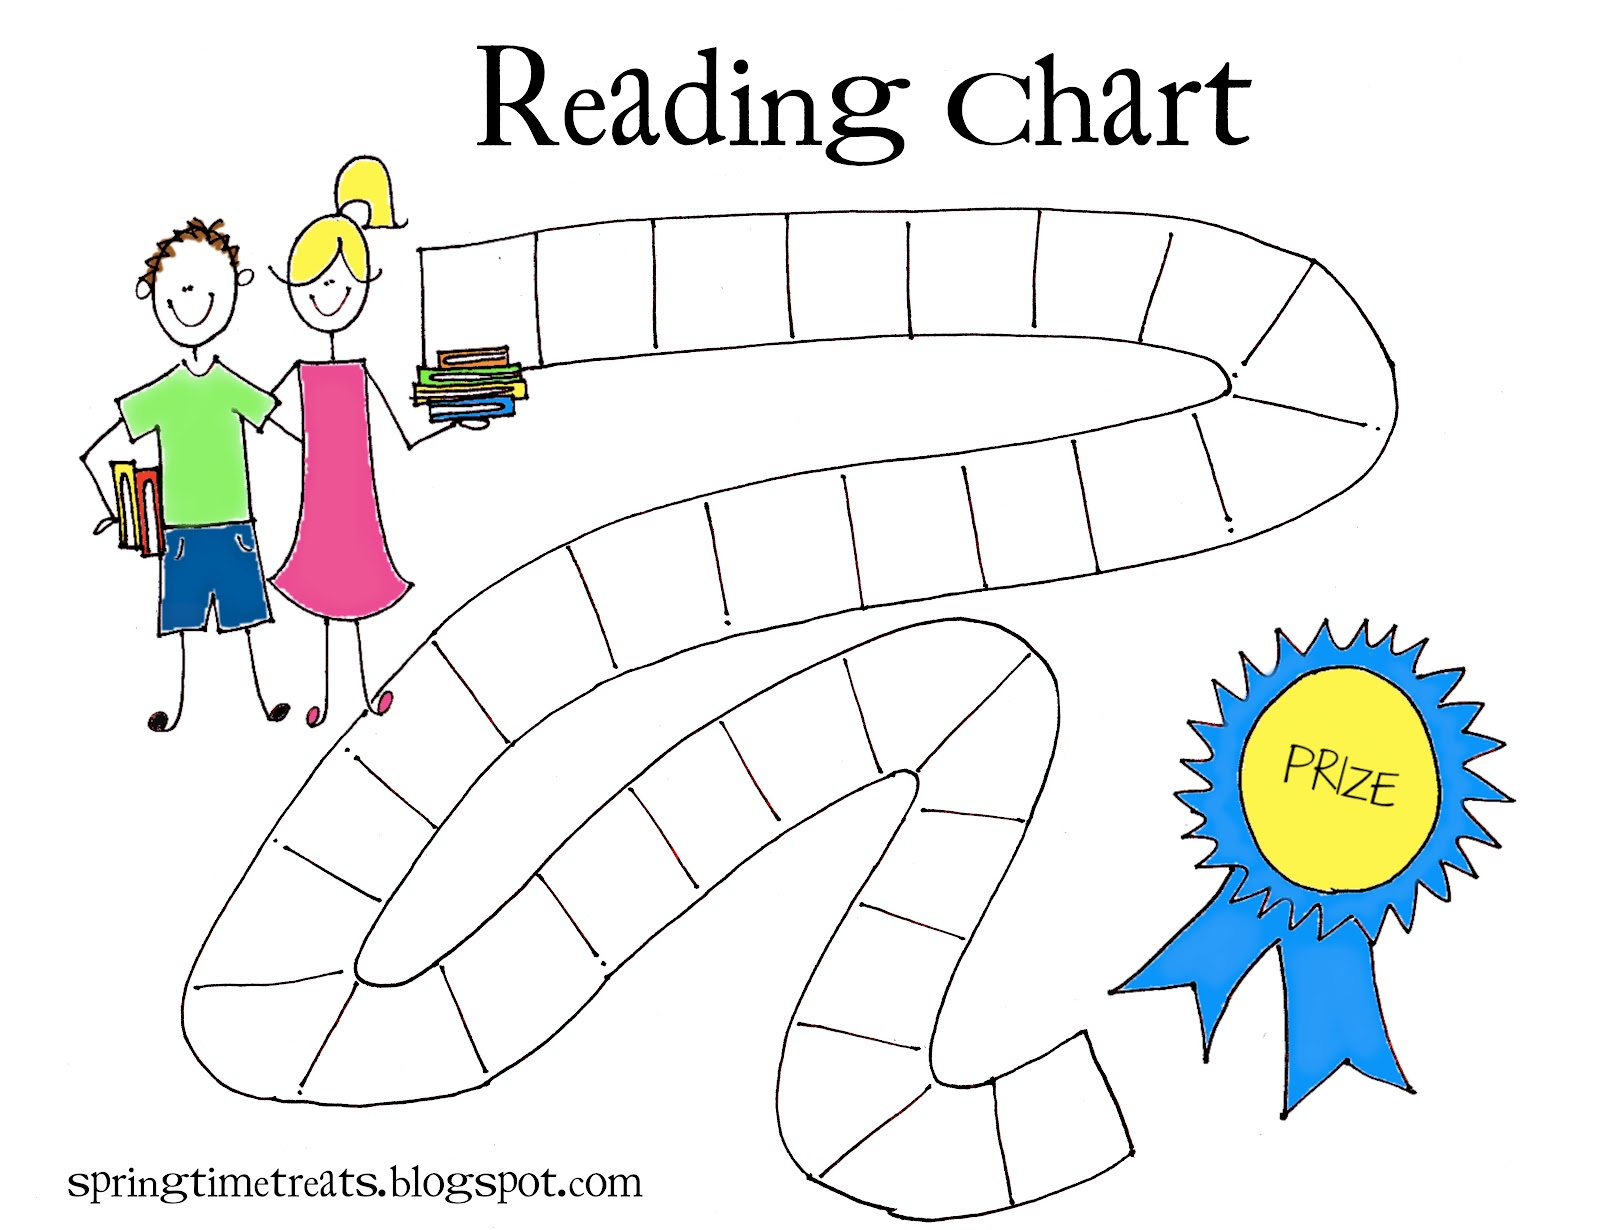 It's just a photo of Crazy Printable Reading Chart